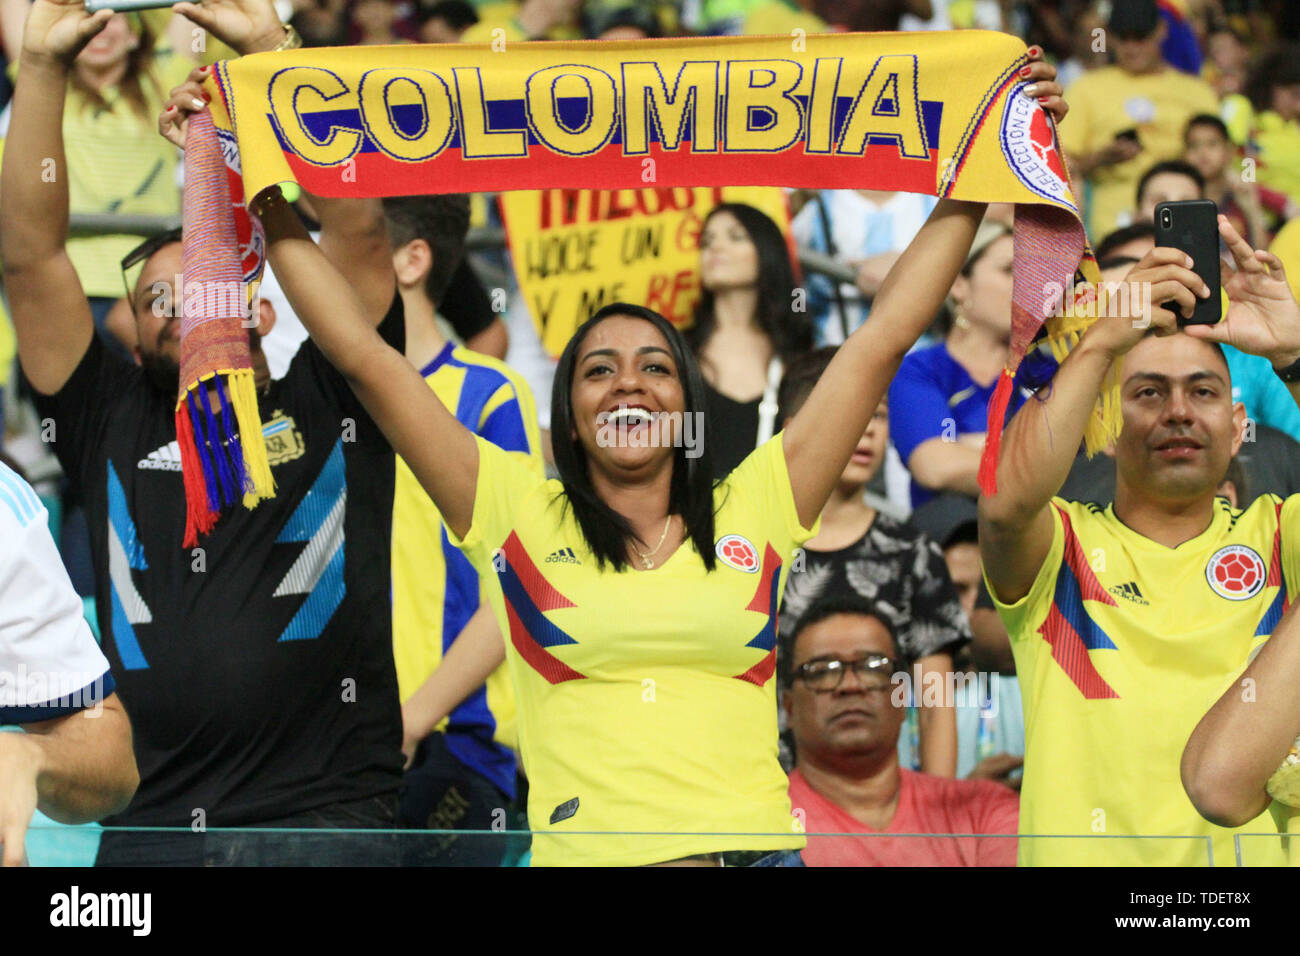 Salvador, Brazil. 15th June, 2019. Colombian fan during match between Argentina and Colombia, game 03, valid for the group phase of Copa América 2019, held this Saturday, 15, at the Arena Fonte Nova in Salvador, BA. Credit: Mauro Akiin Nassor/FotoArena/Alamy Live News - Stock Image